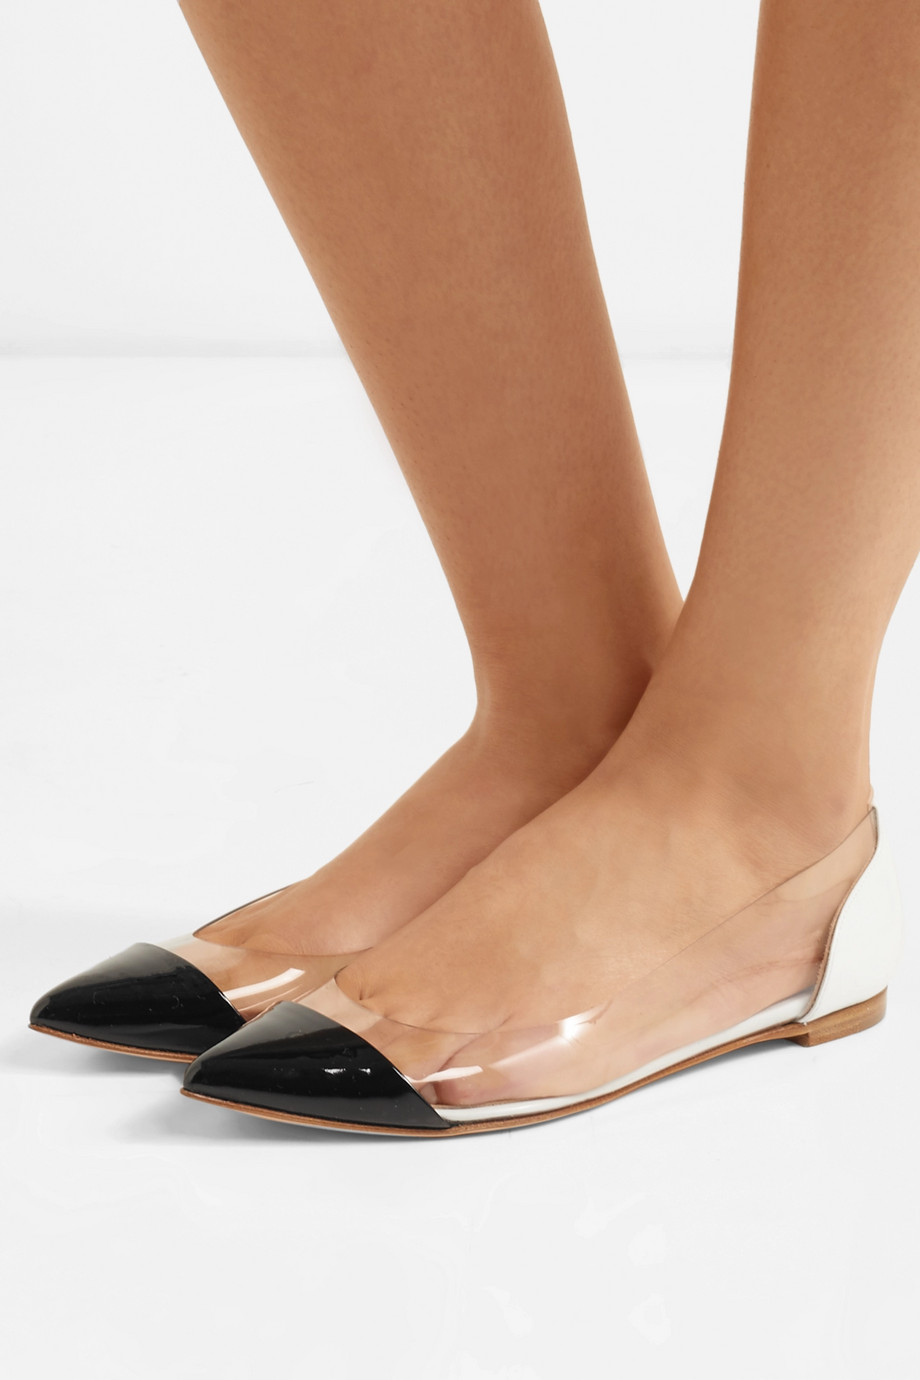 Leather ballerinas Gianvito Rossi buy Leather ballerinas Gianvito Rossi internet shop